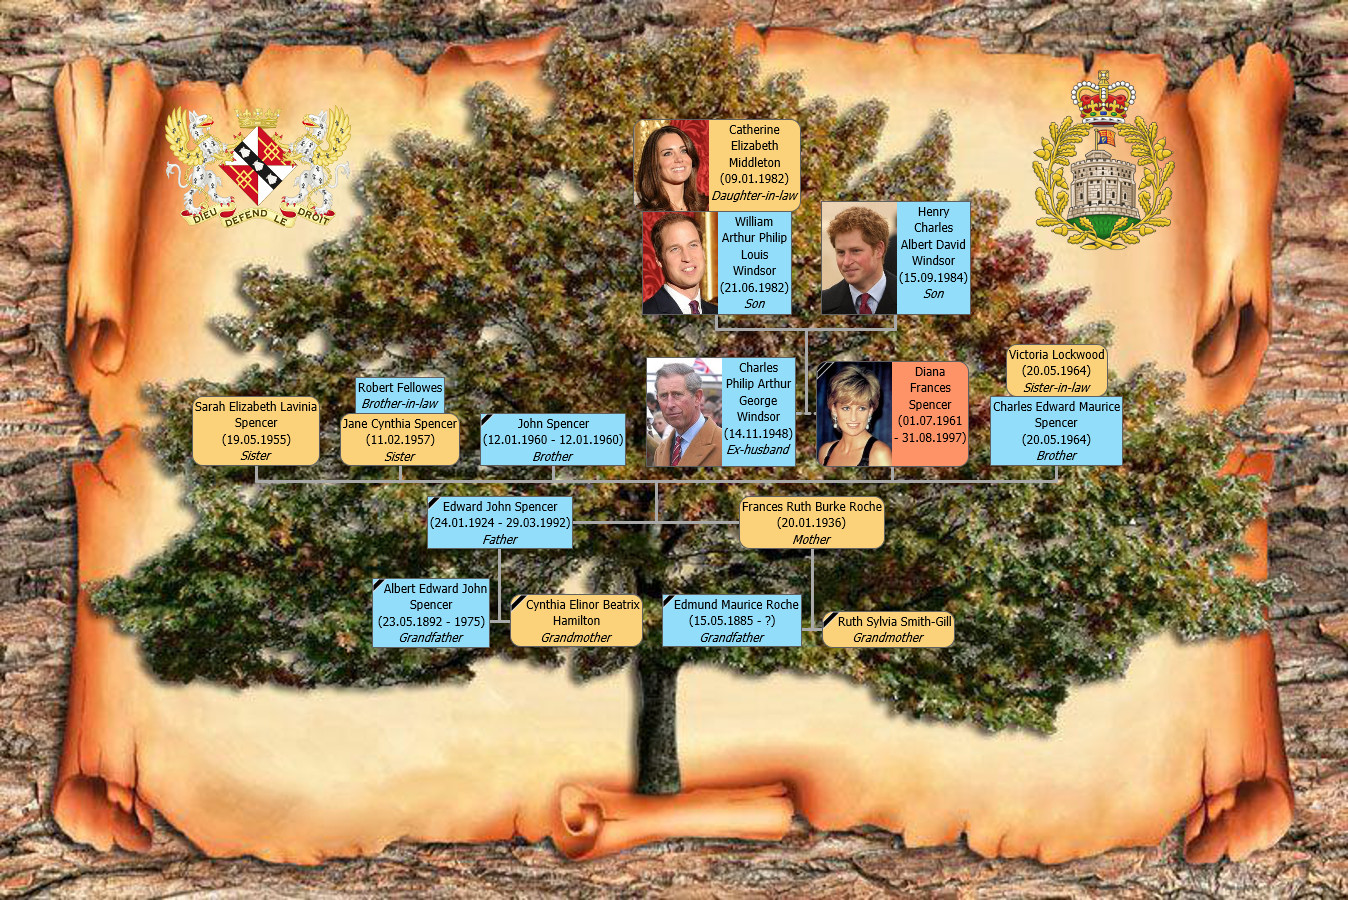 Family Tree with background image